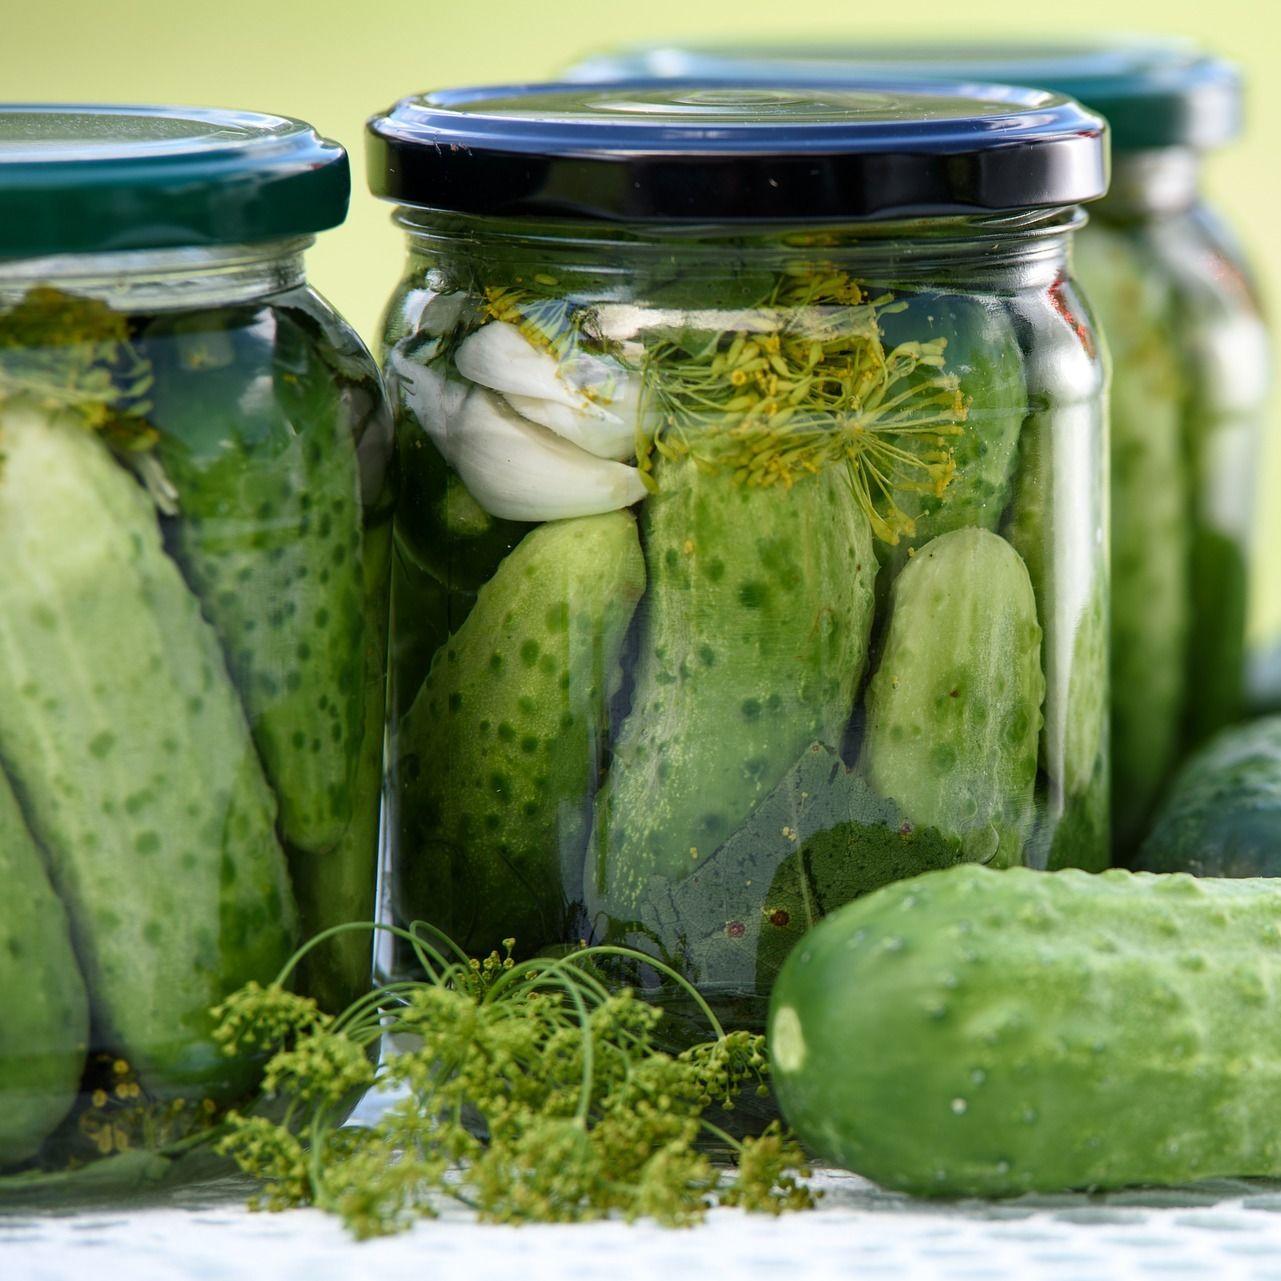 Pickled cucumbers 1520638 1920 nzvuld